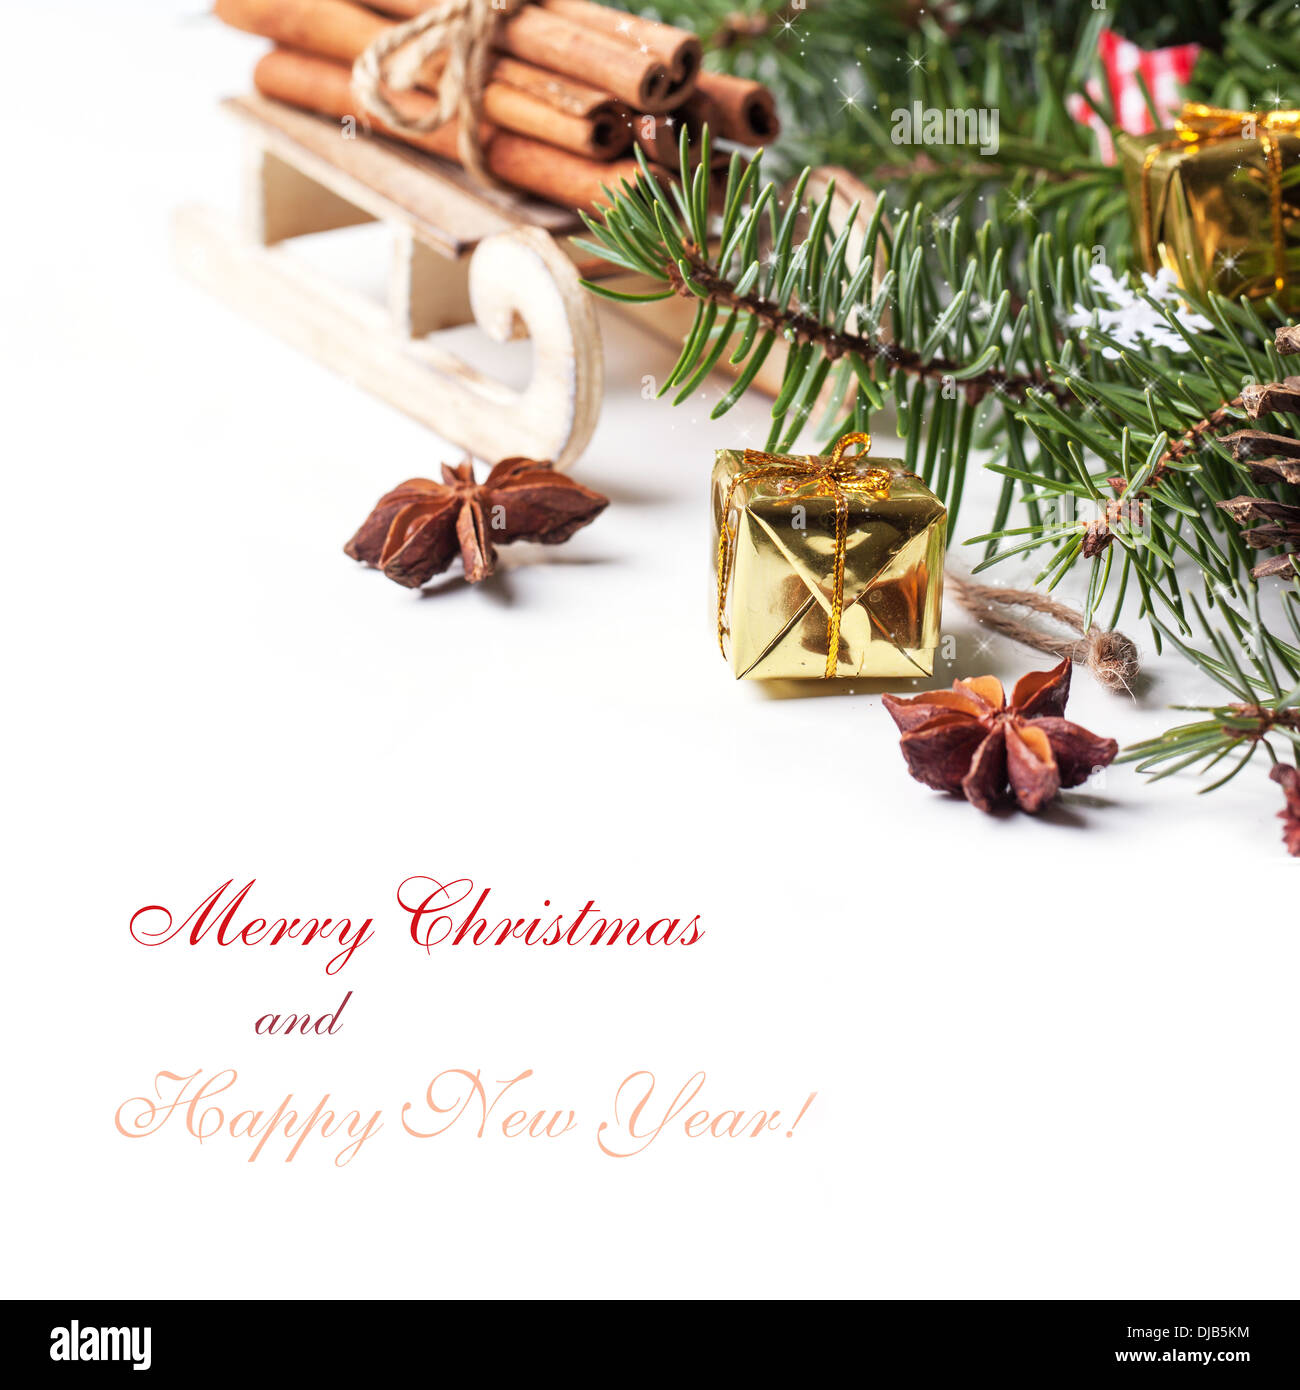 Christmas Card With Wooden Sled With Heap Of Cinnamon And Golden